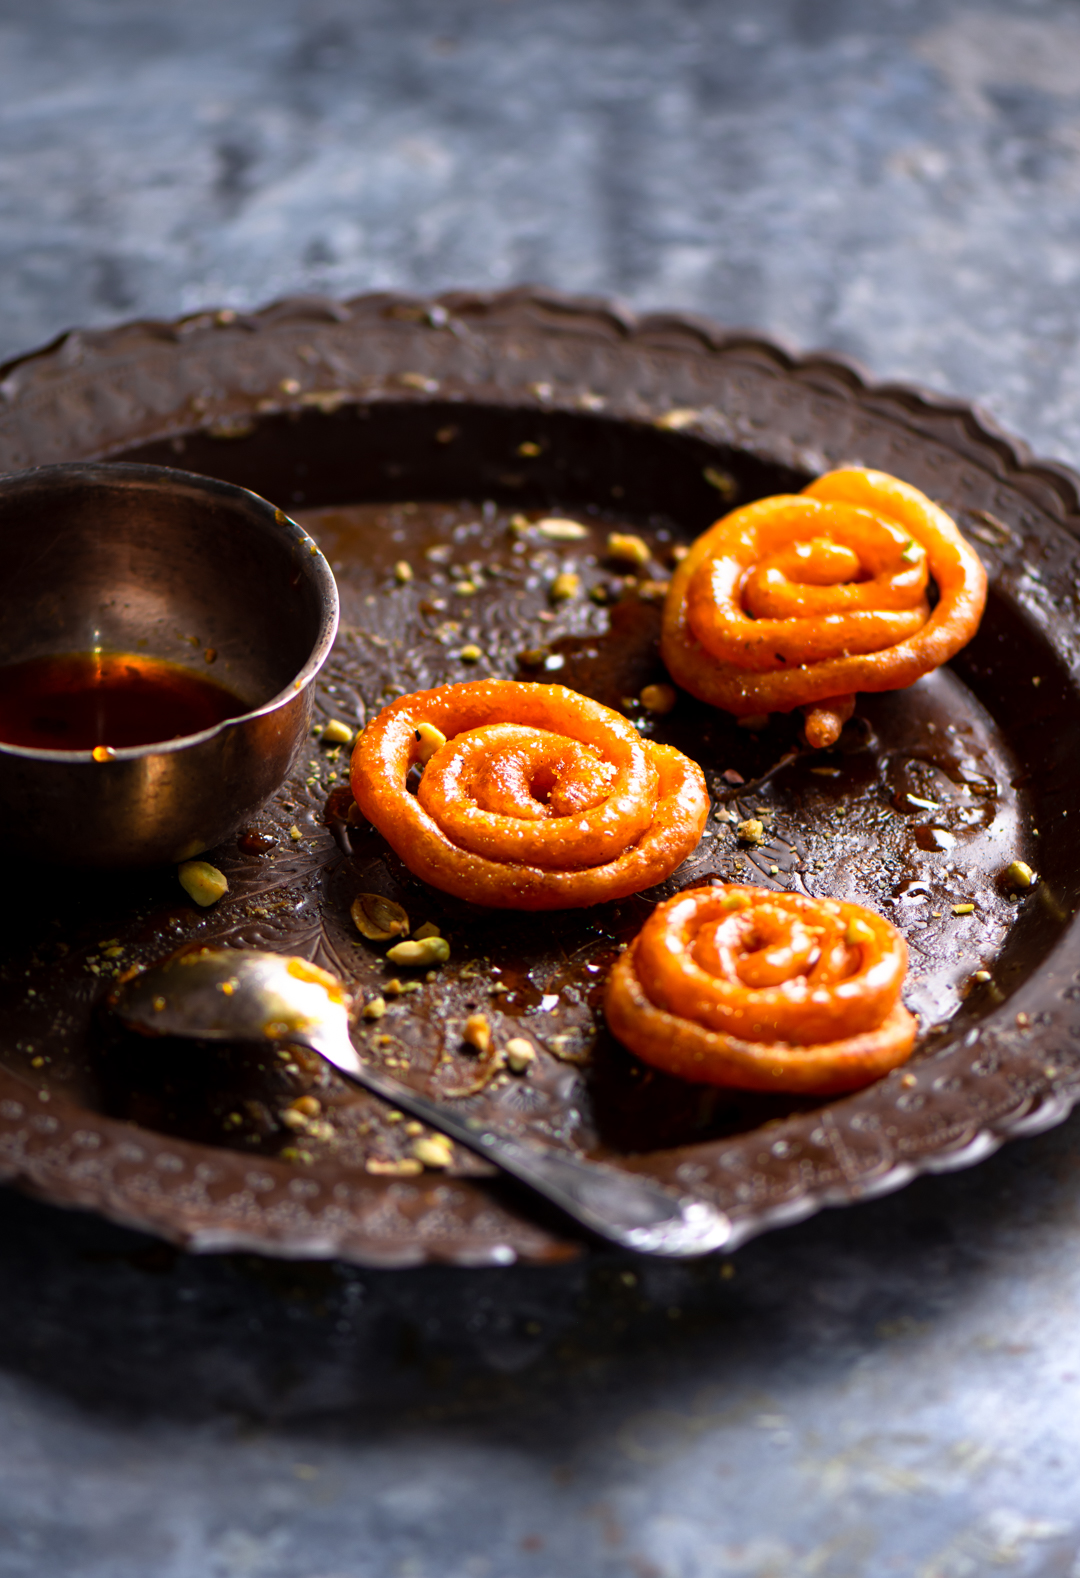 This home made instant crispy jalebi is absolutely impressive and made in minutes without compromising the taste and texture.